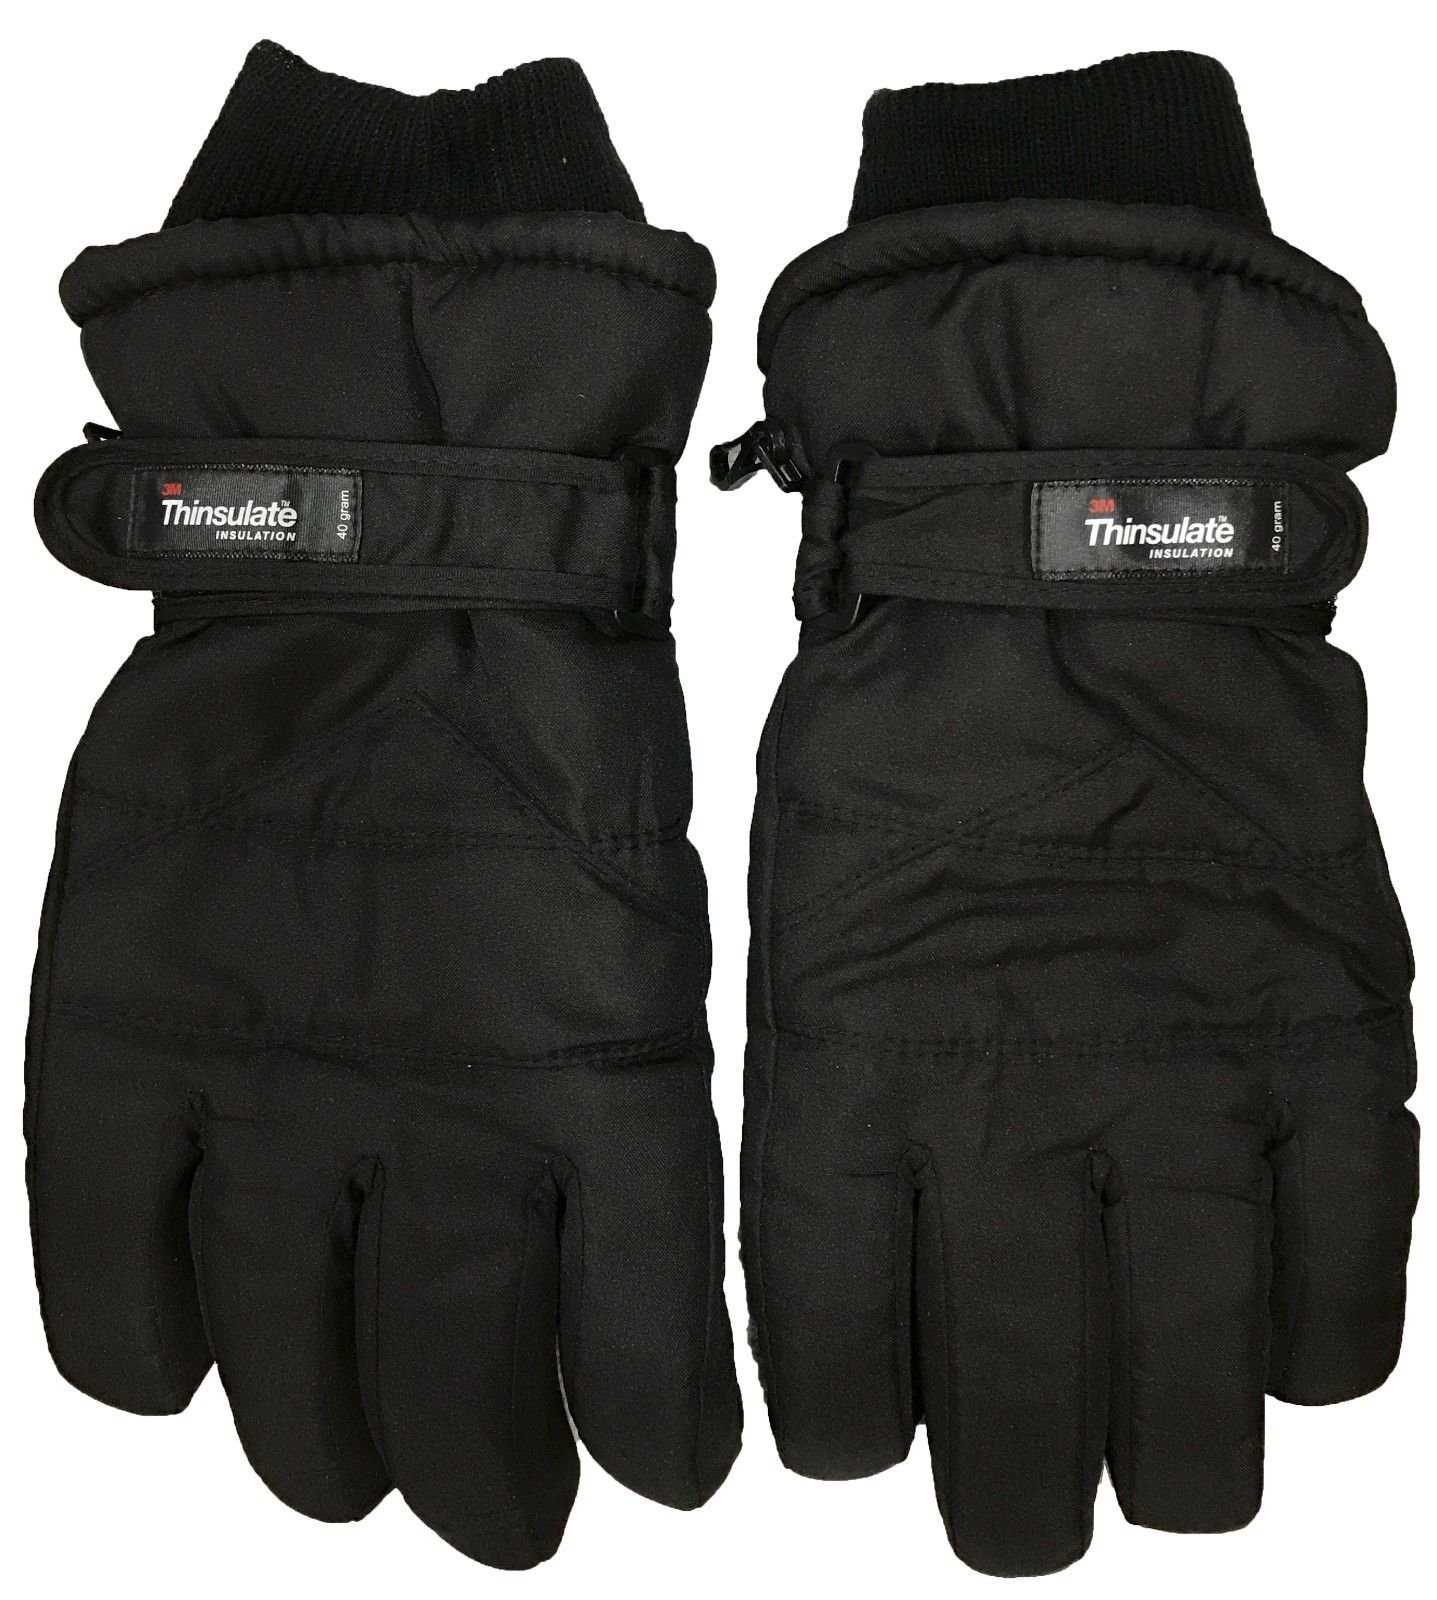 Men Extreme Cold Weather 3M Thinsulate Insulation Ski Gloves (XL) by energi8_dir